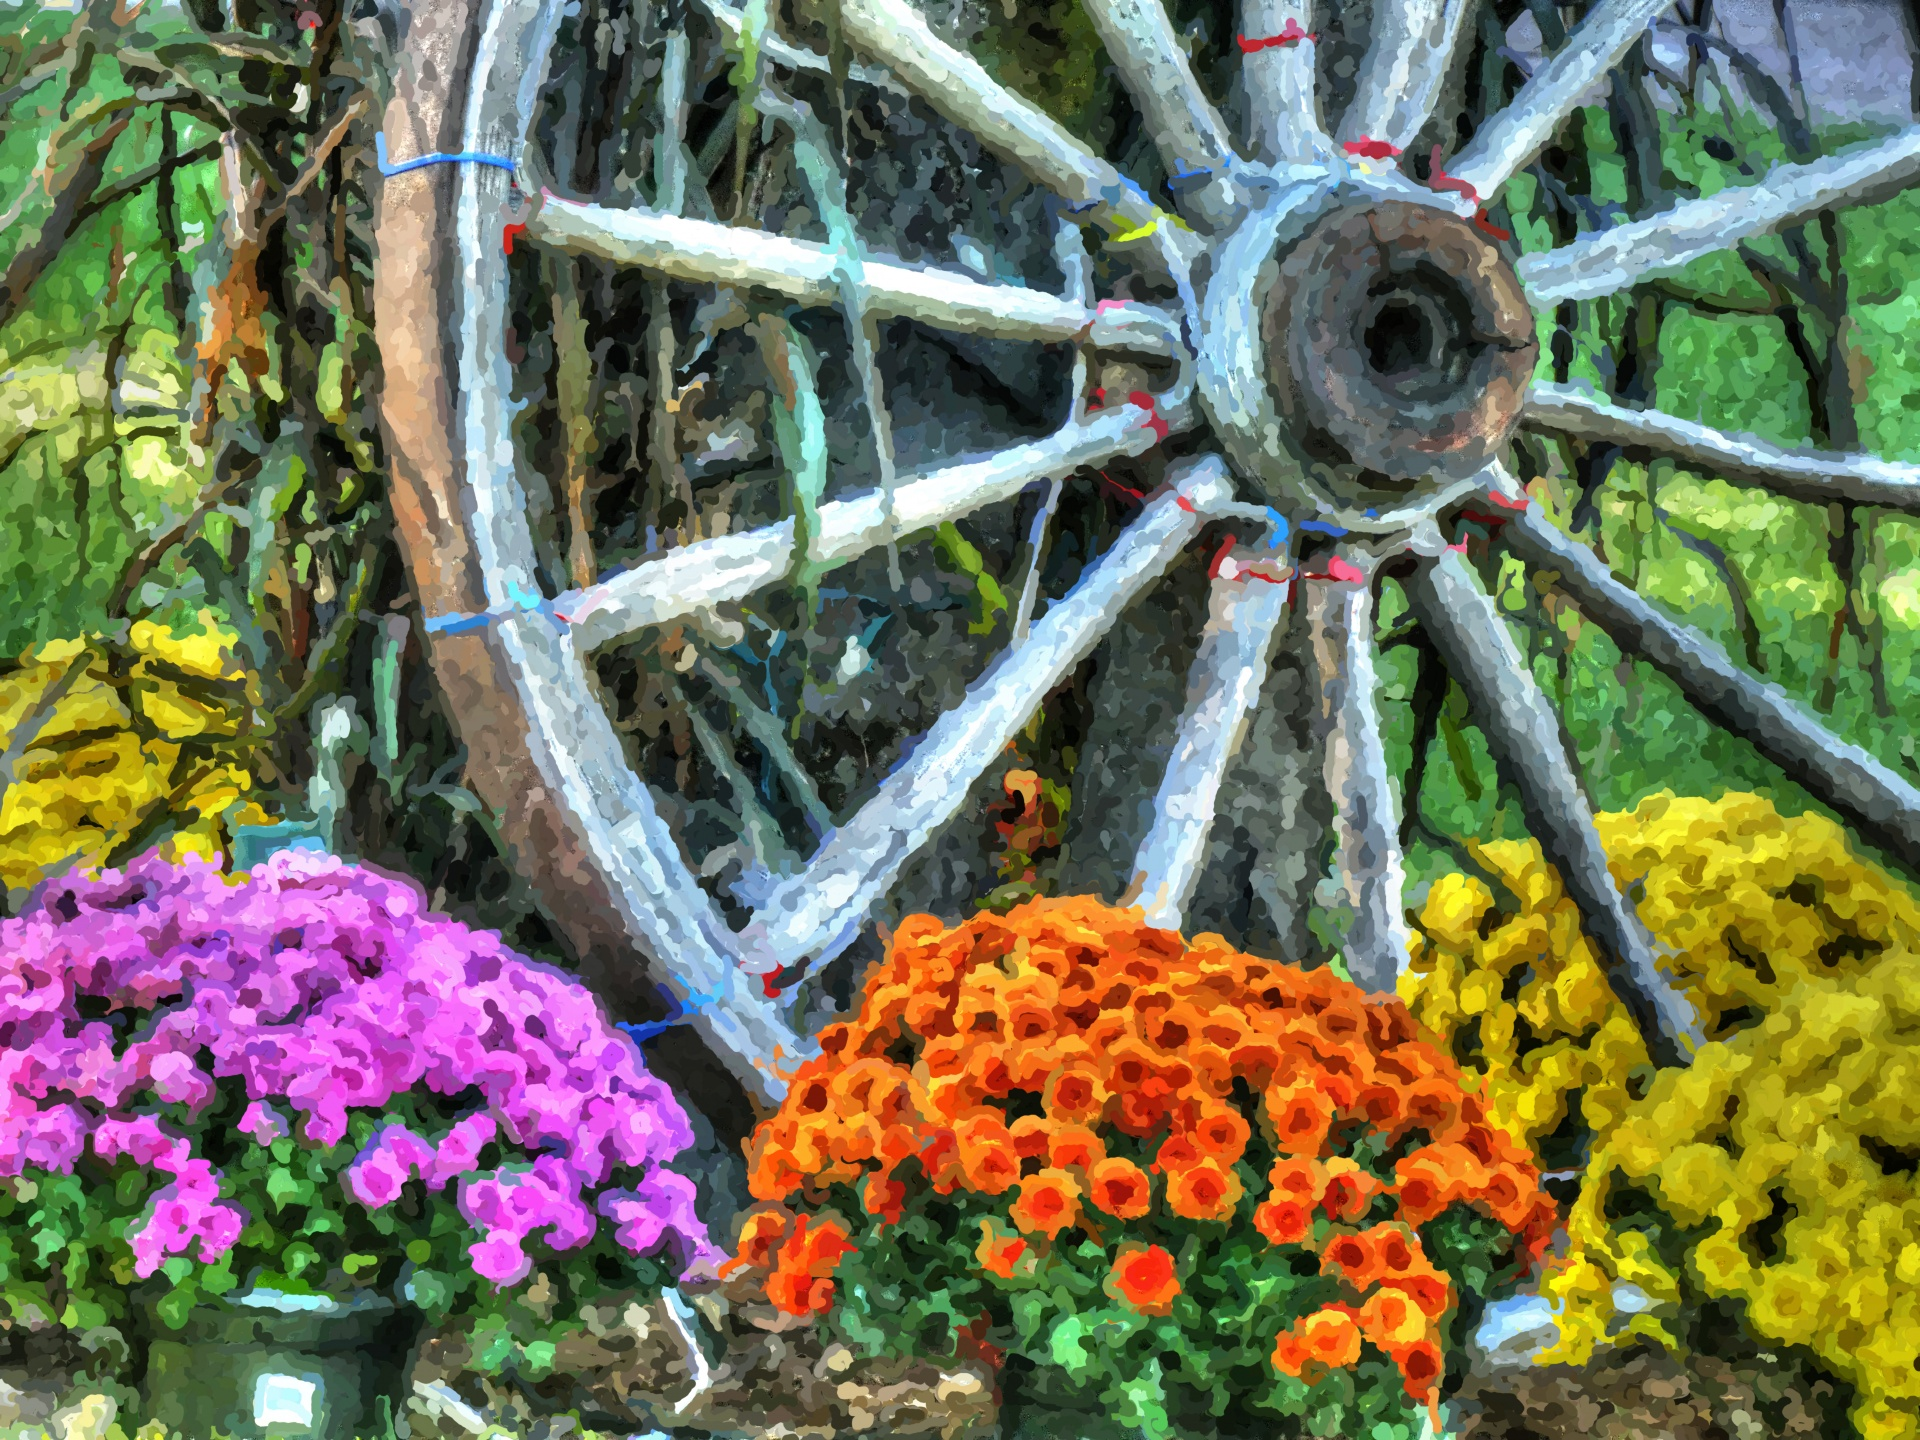 Download Free Photo Of Wagon Wheel Wheel Flowers Garden Impressionist From Needpix Com